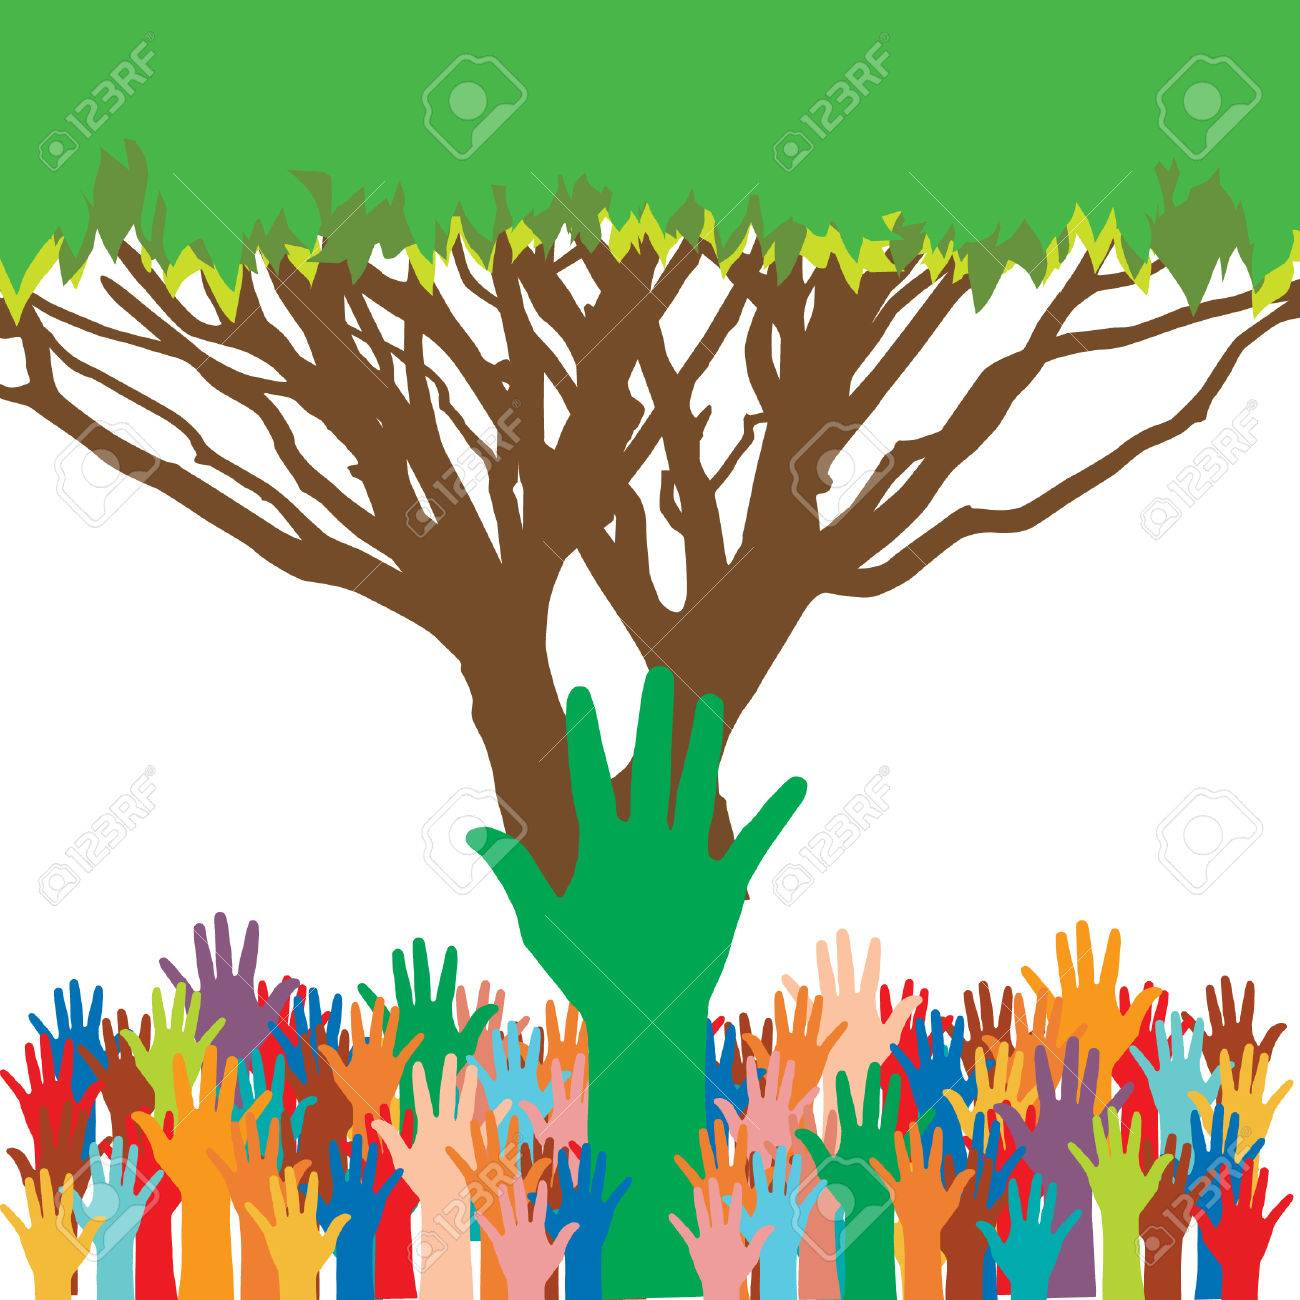 Save Environment Save Tree Royalty Free Cliparts Vectors And Stock Illustration Image 22395123